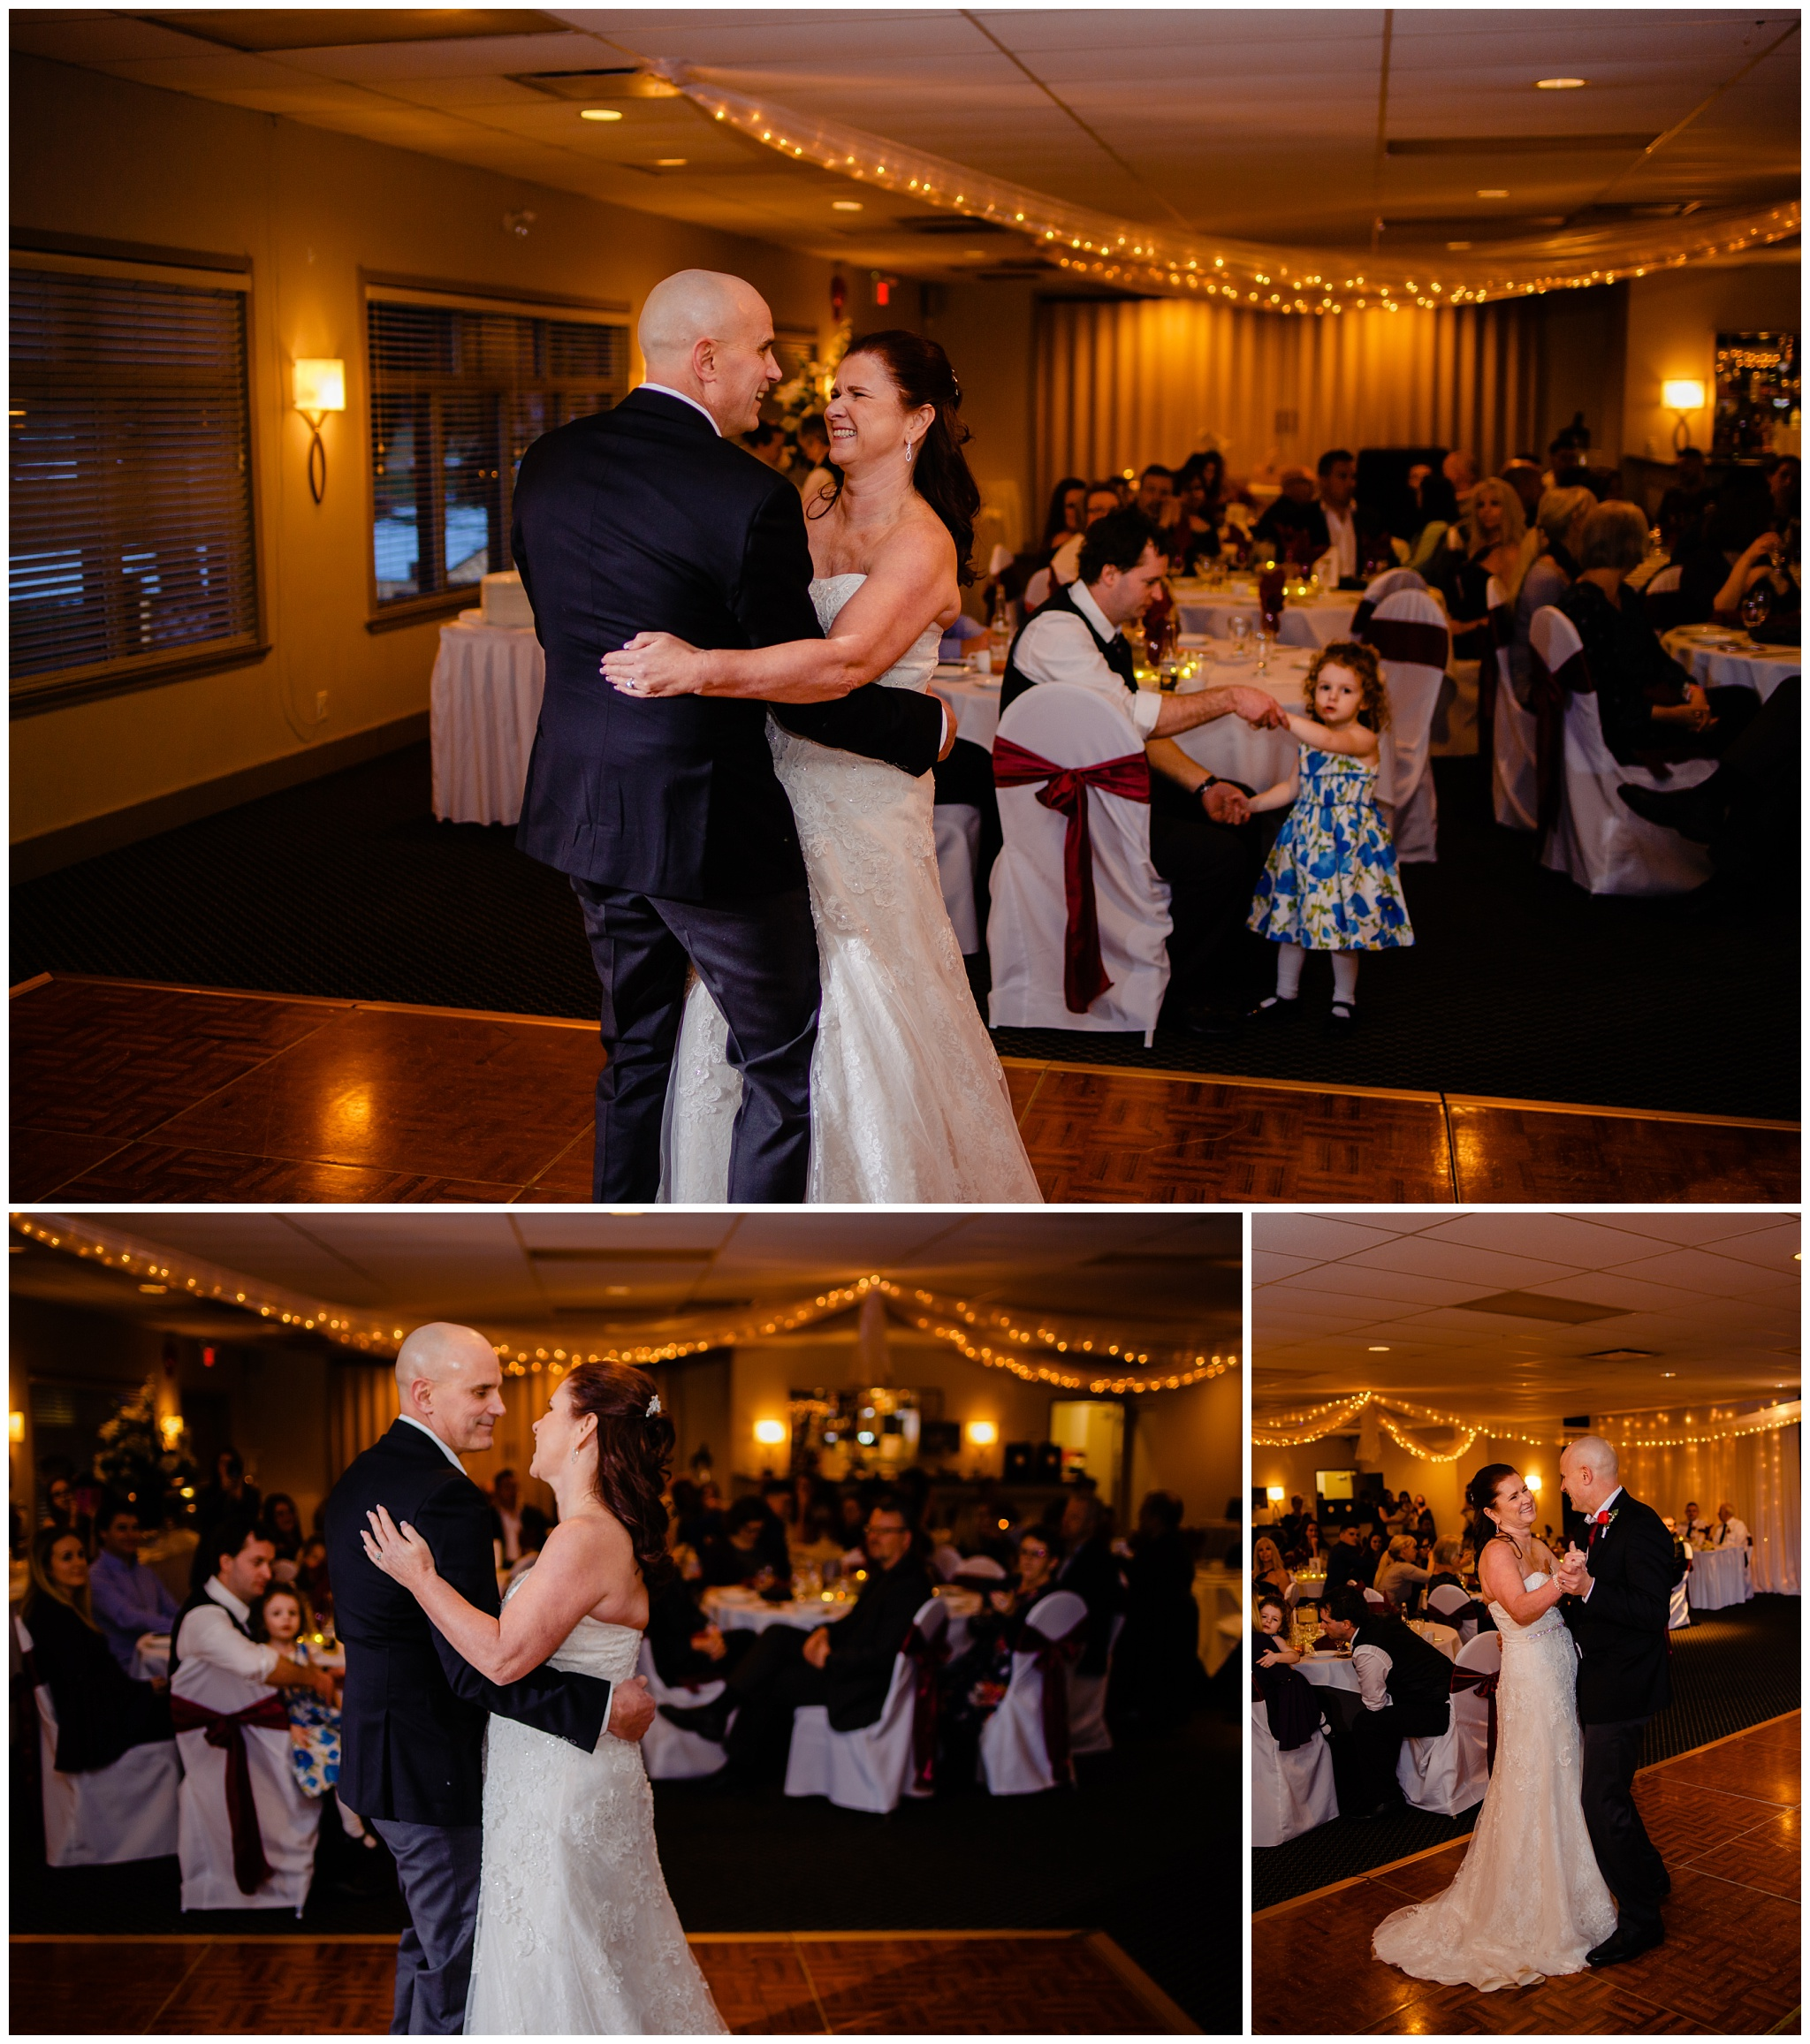 White Rock Intimate Wedding 5 Star Catering Venue Surrey BC Middle Aged Couple_0018.jpg